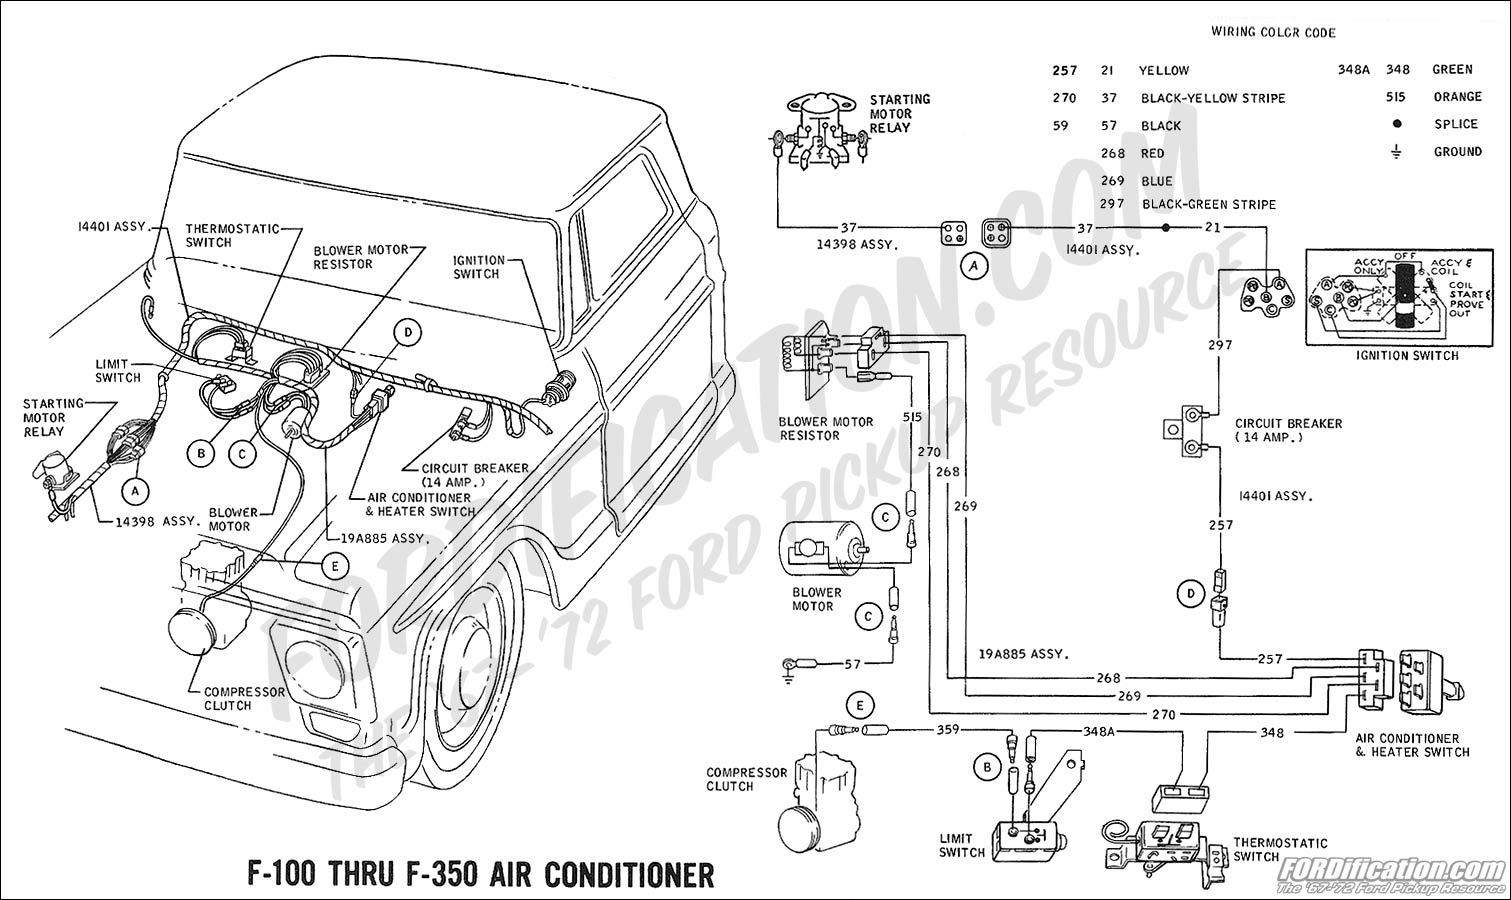 85 K5 Wiper Switch Wiring Diagram also P 0900c1528004b198 as well 489414684476493488 furthermore JtoJWL moreover Fig62 1992 Body Wiring Continued Wire Diagrams Easy Simple Detail Baja Designs Trailer Frigidaire Diagram On. on 1978 chevy van vacuum diagram